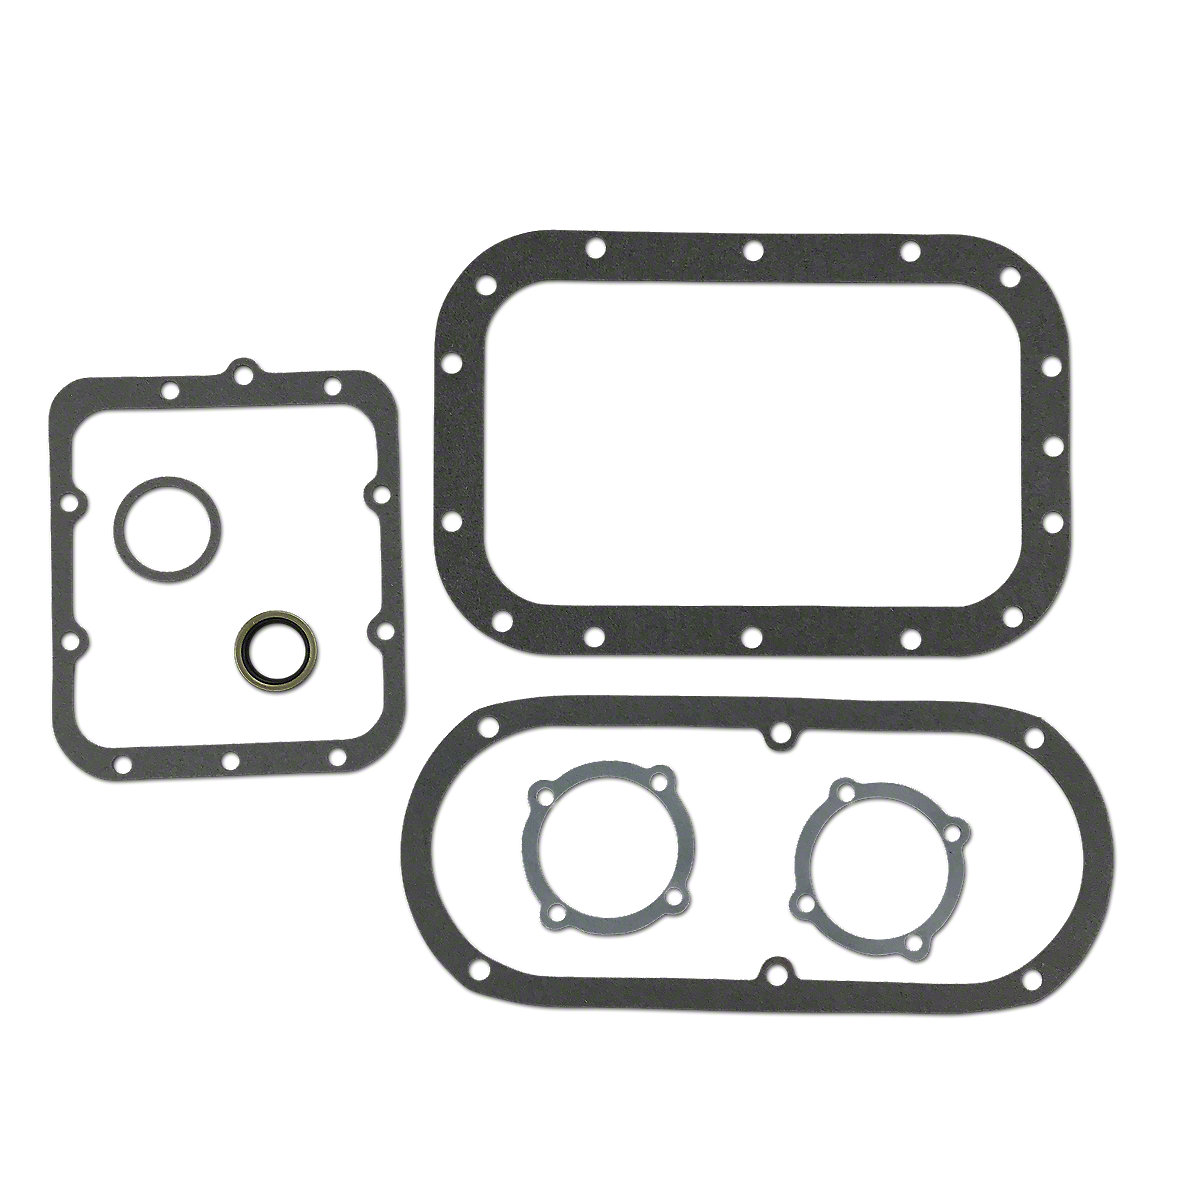 FDS3971 Transmission Seal and Gasket Kit